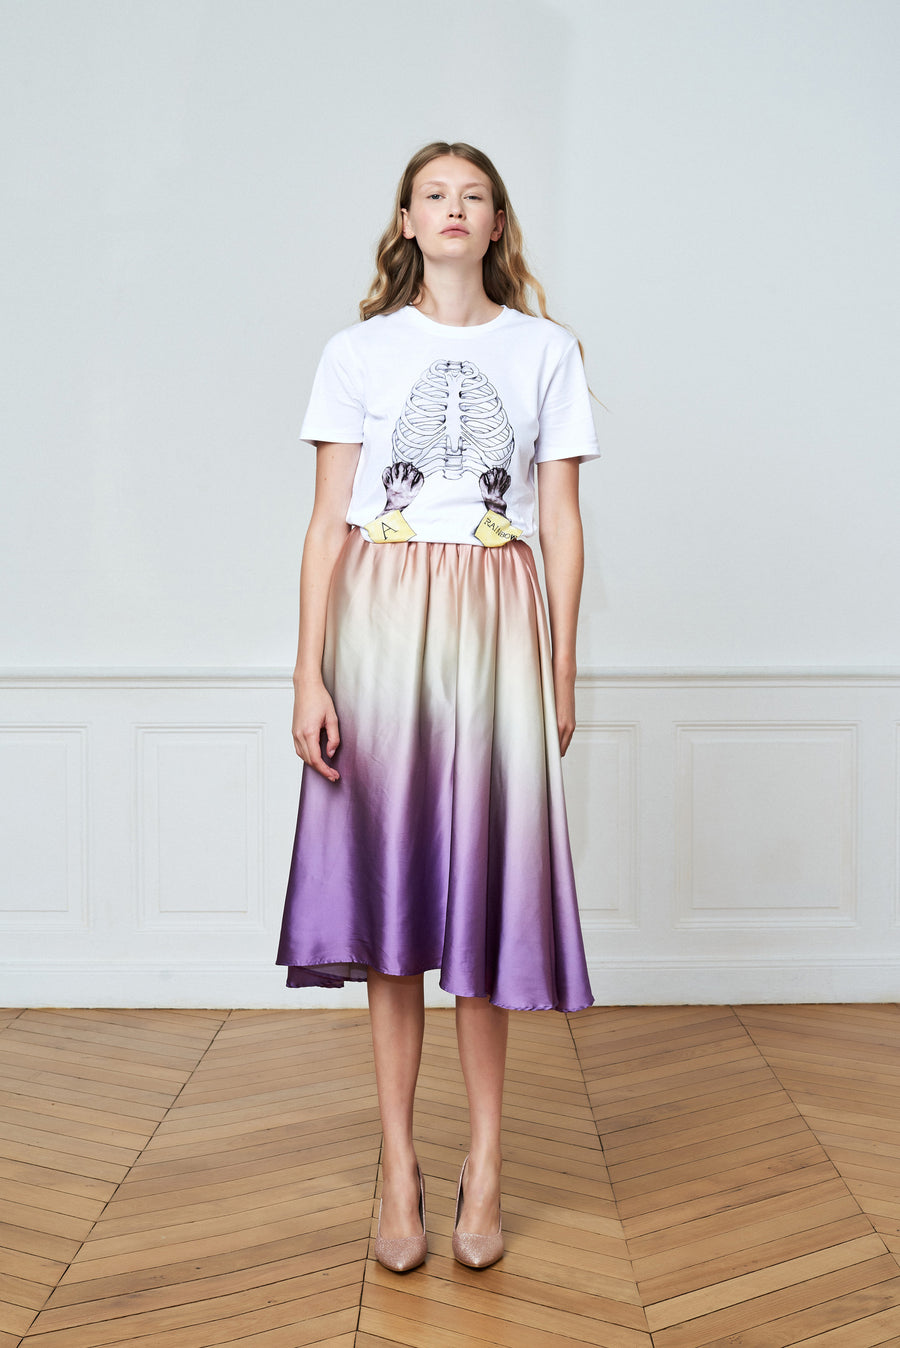 Theme Graphic Prints T-shirt and Gradient Over Knee Skirt